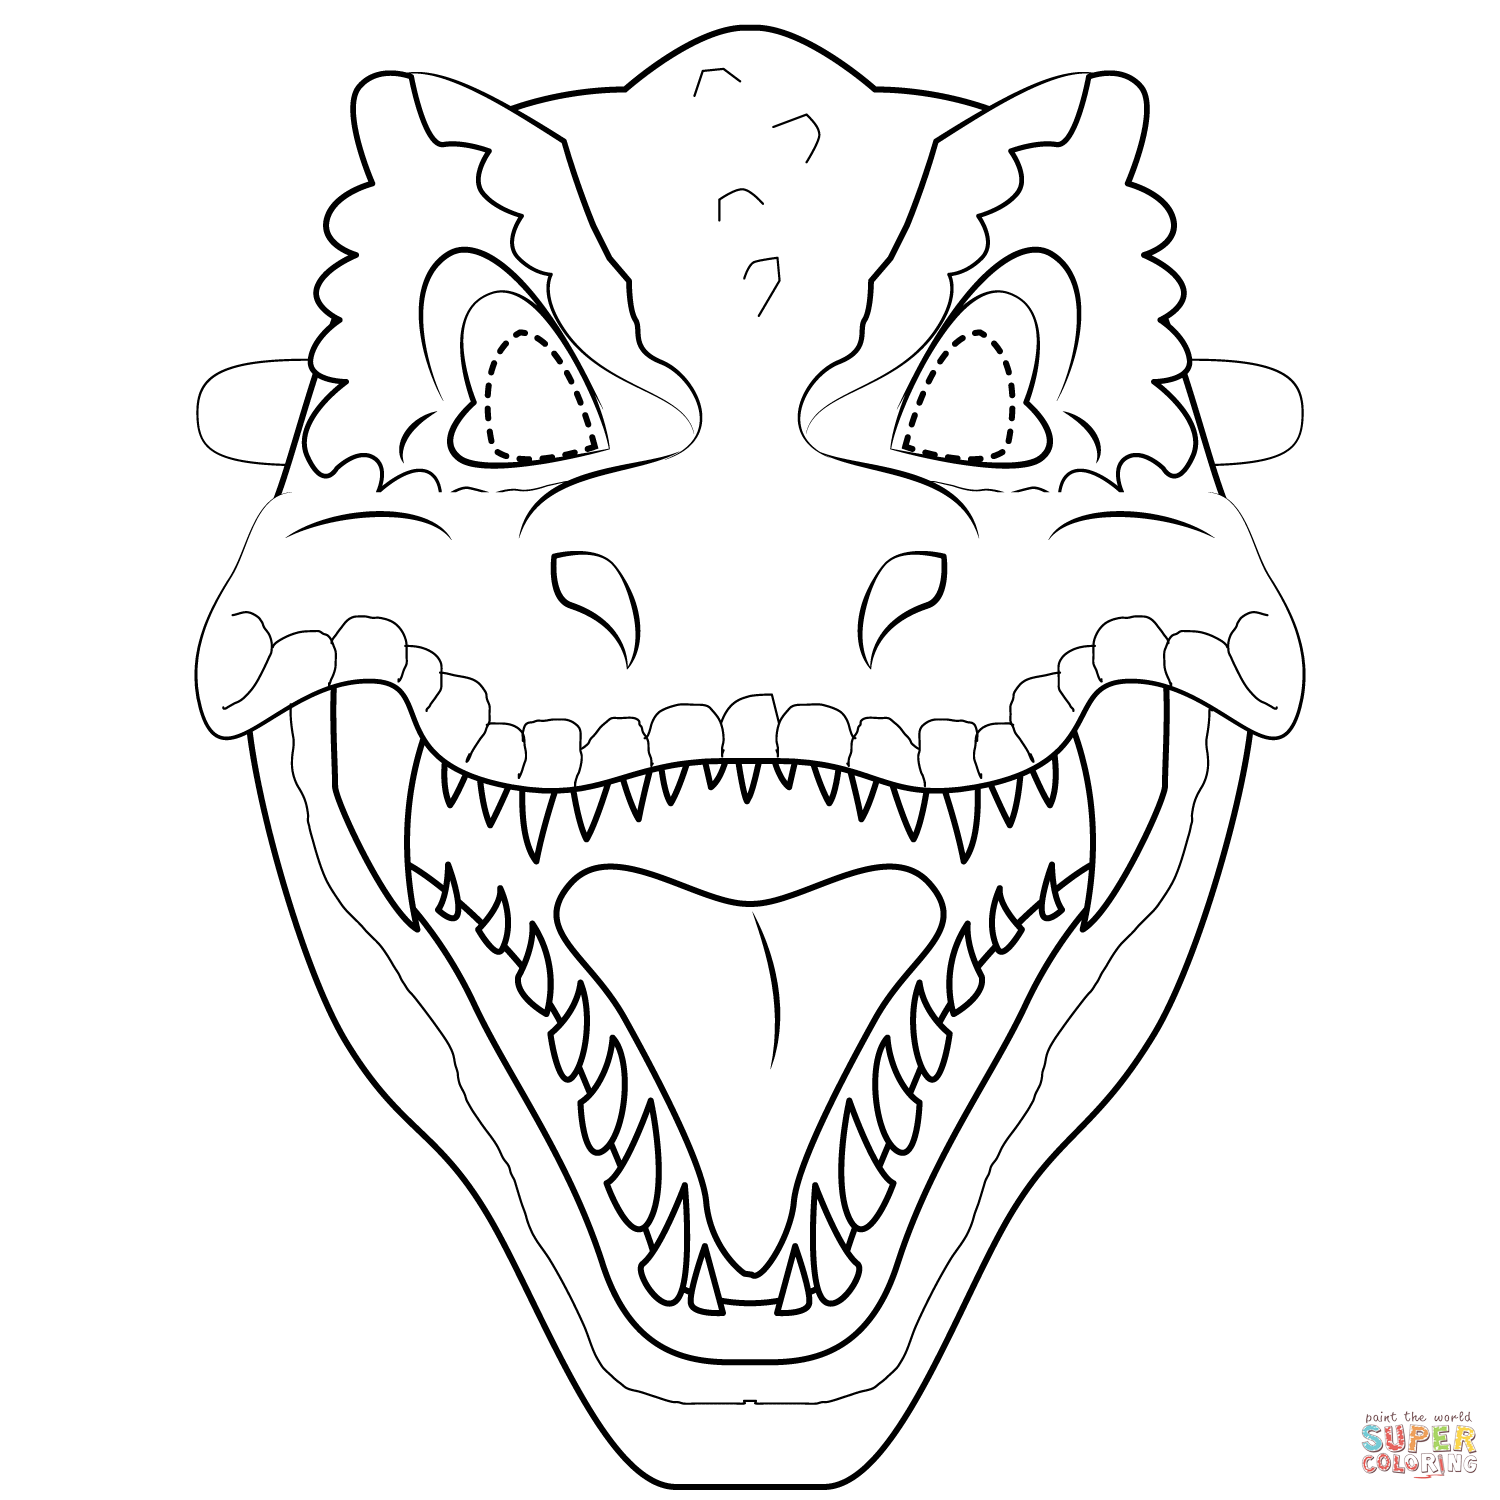 Dinosaur Coloring Pages Template Amazing Design